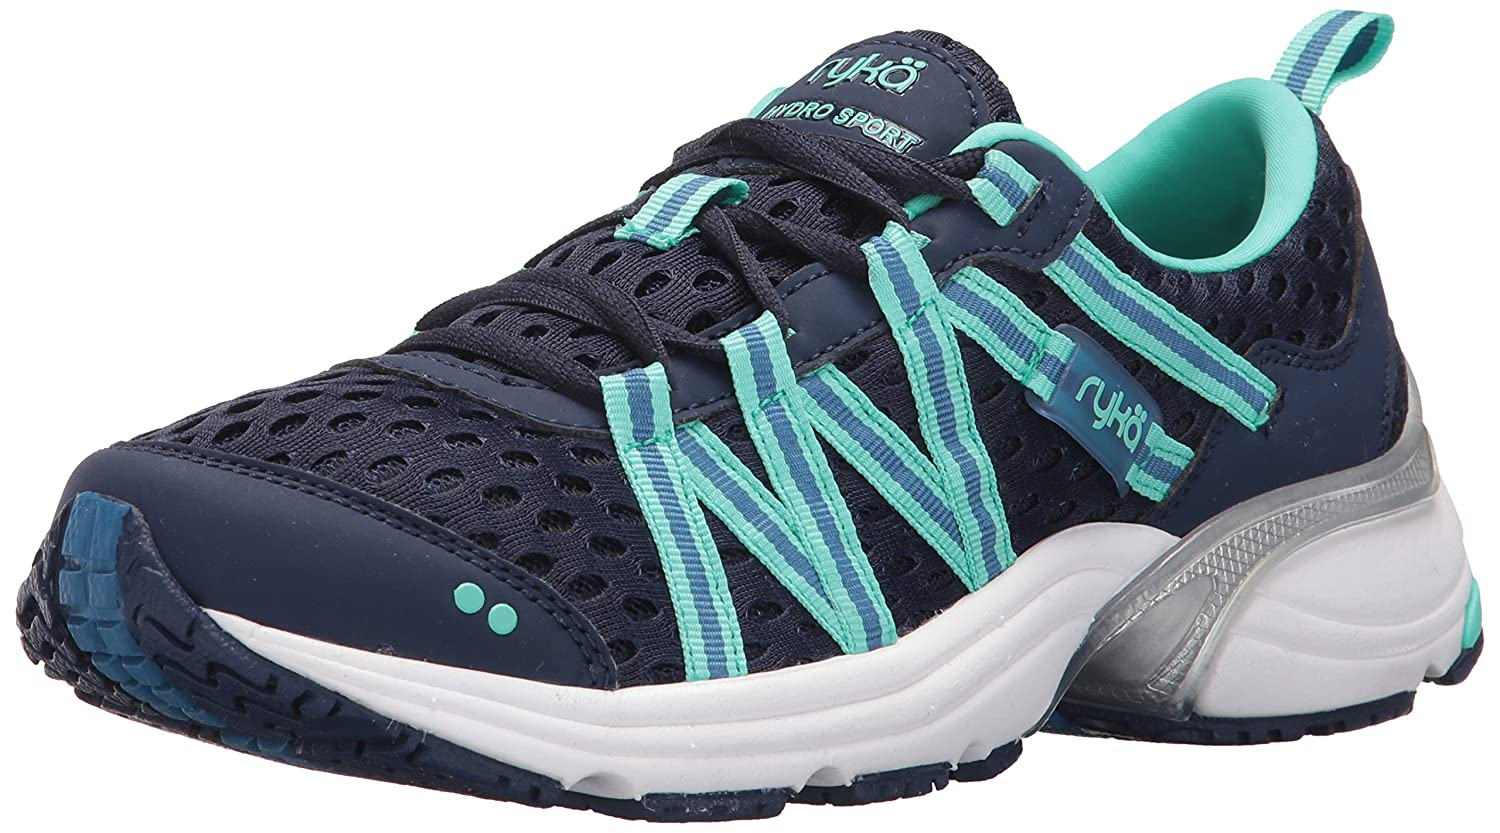 bluee Teal Ryka Women's Hydro Sport Water shoes